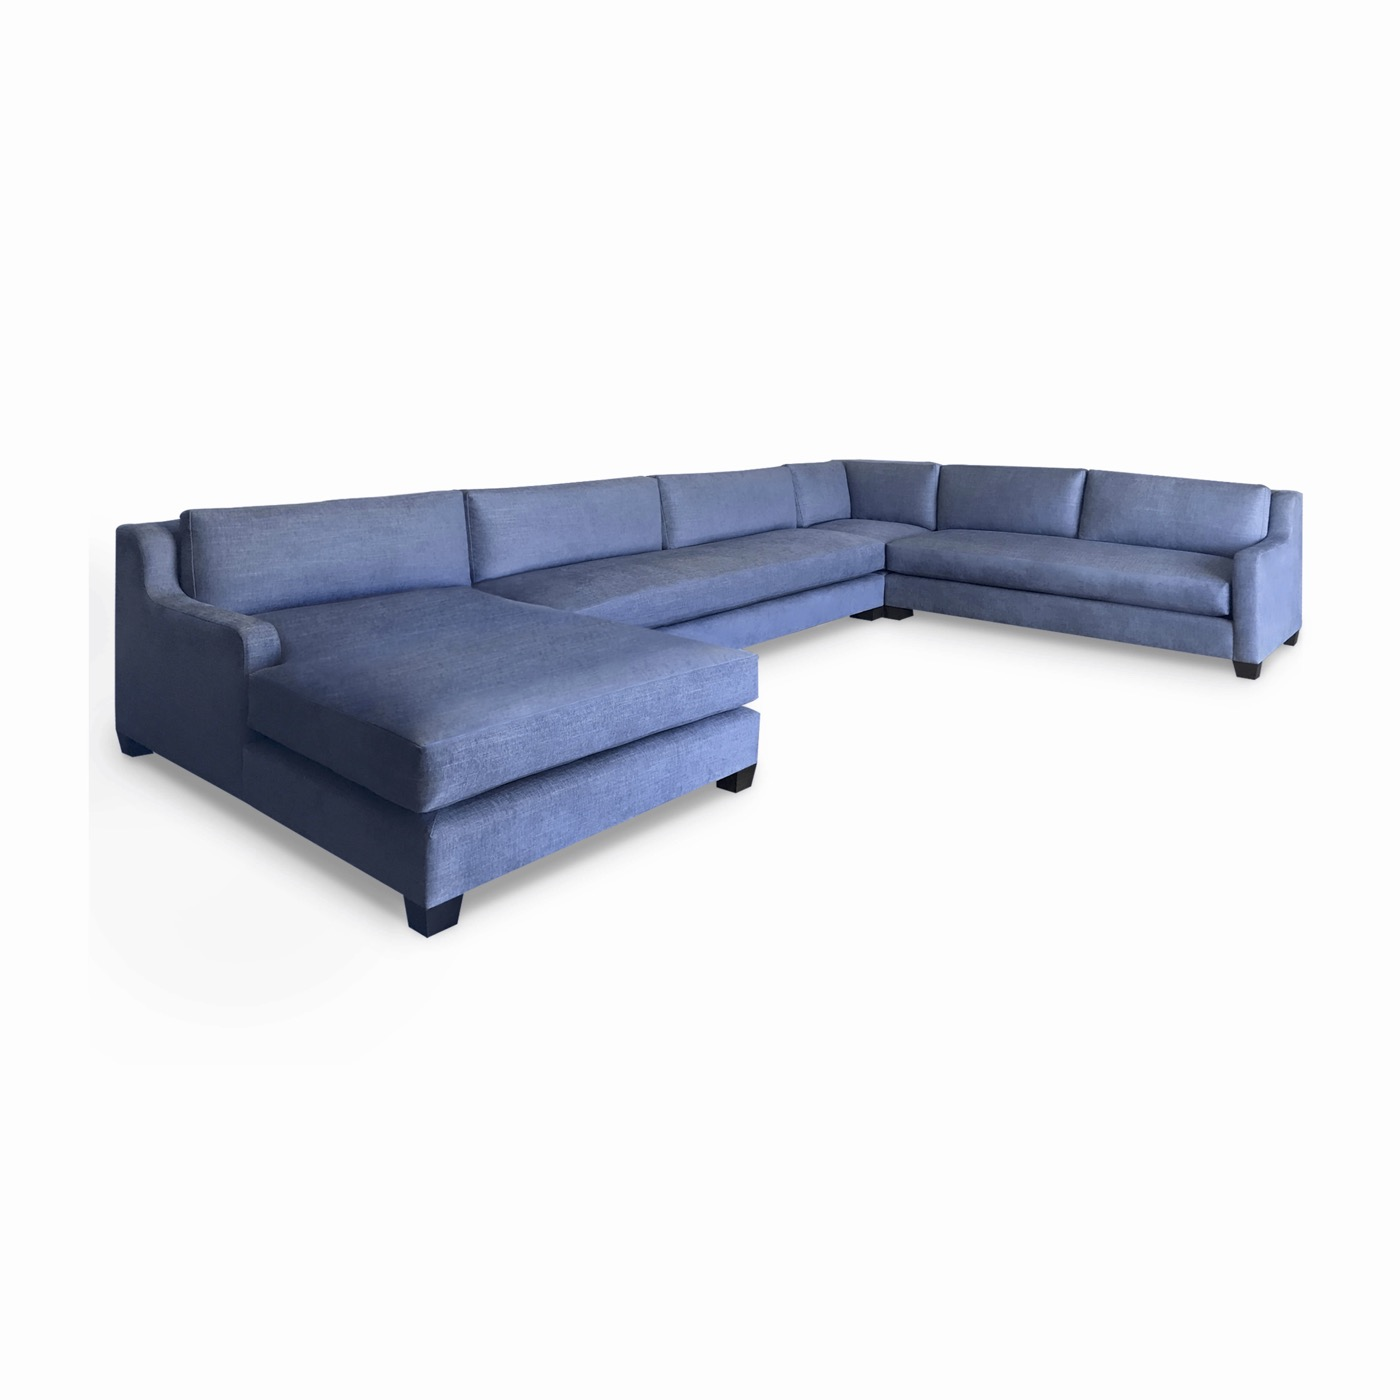 Awe Inspiring Hamilton Sectional Plantation Design Caraccident5 Cool Chair Designs And Ideas Caraccident5Info